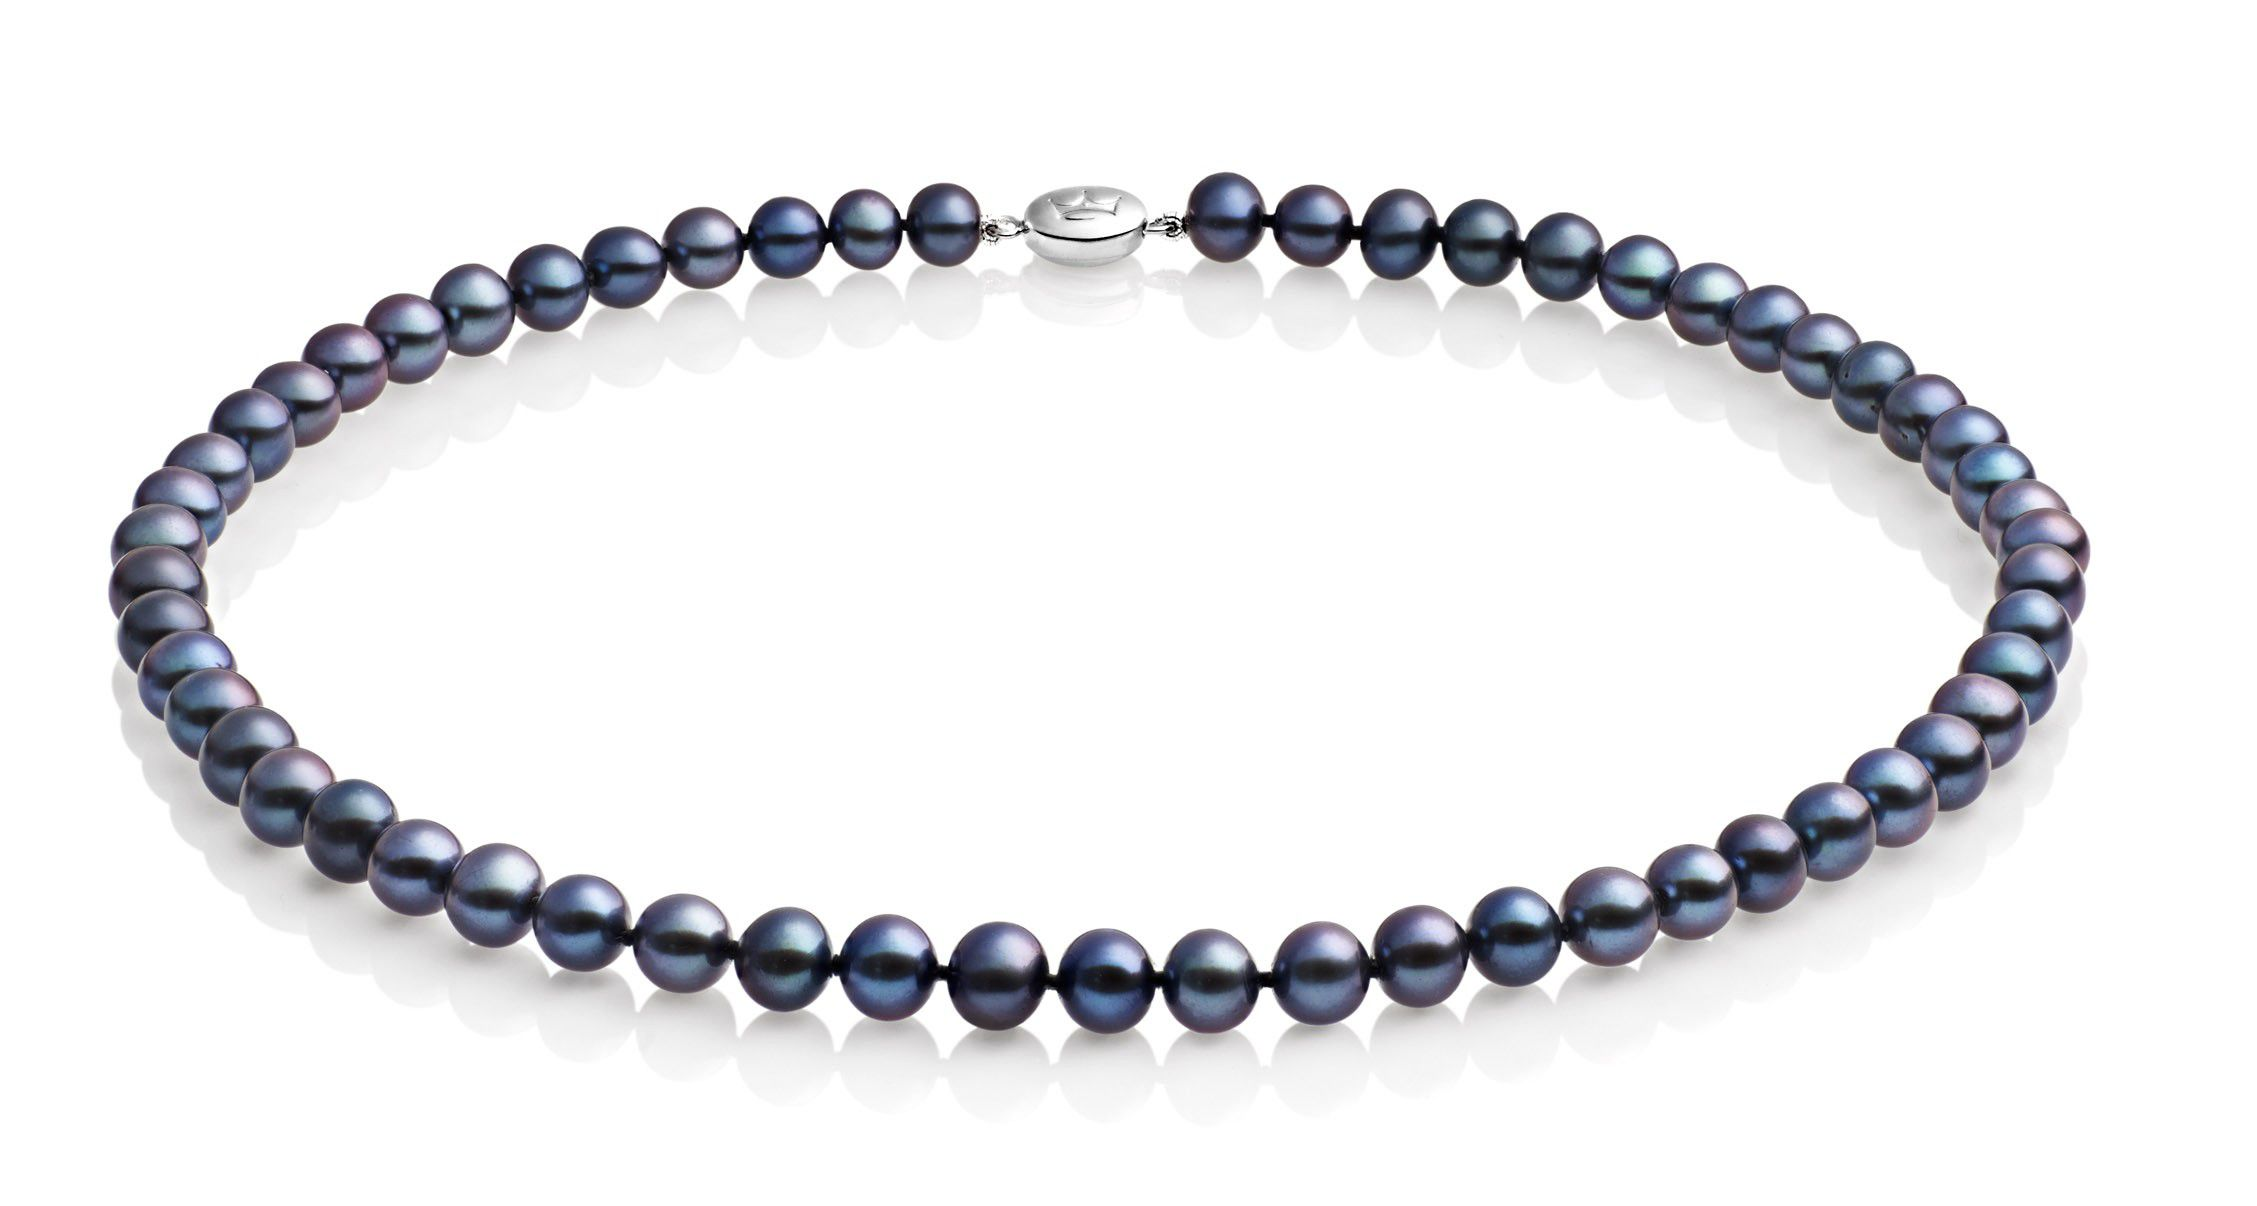 jersey pearl black pearl necklace